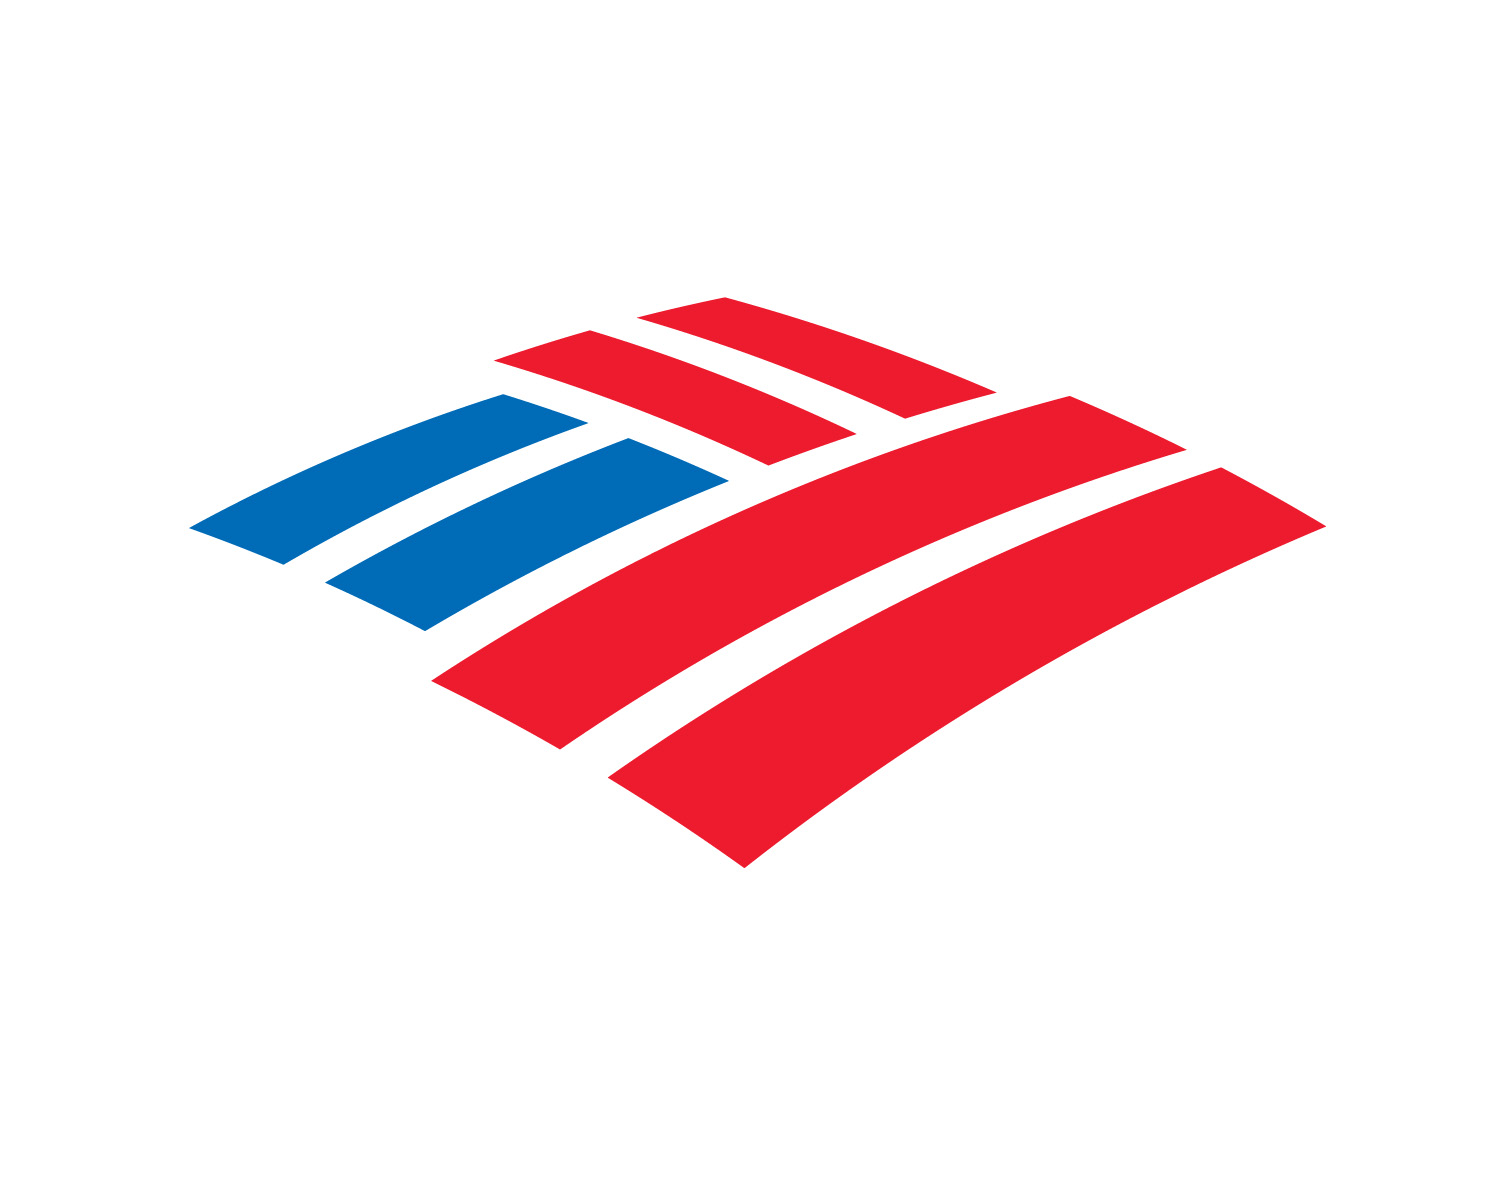 Bank of america clipart clip art Bank of america clipart - ClipartFest clip art